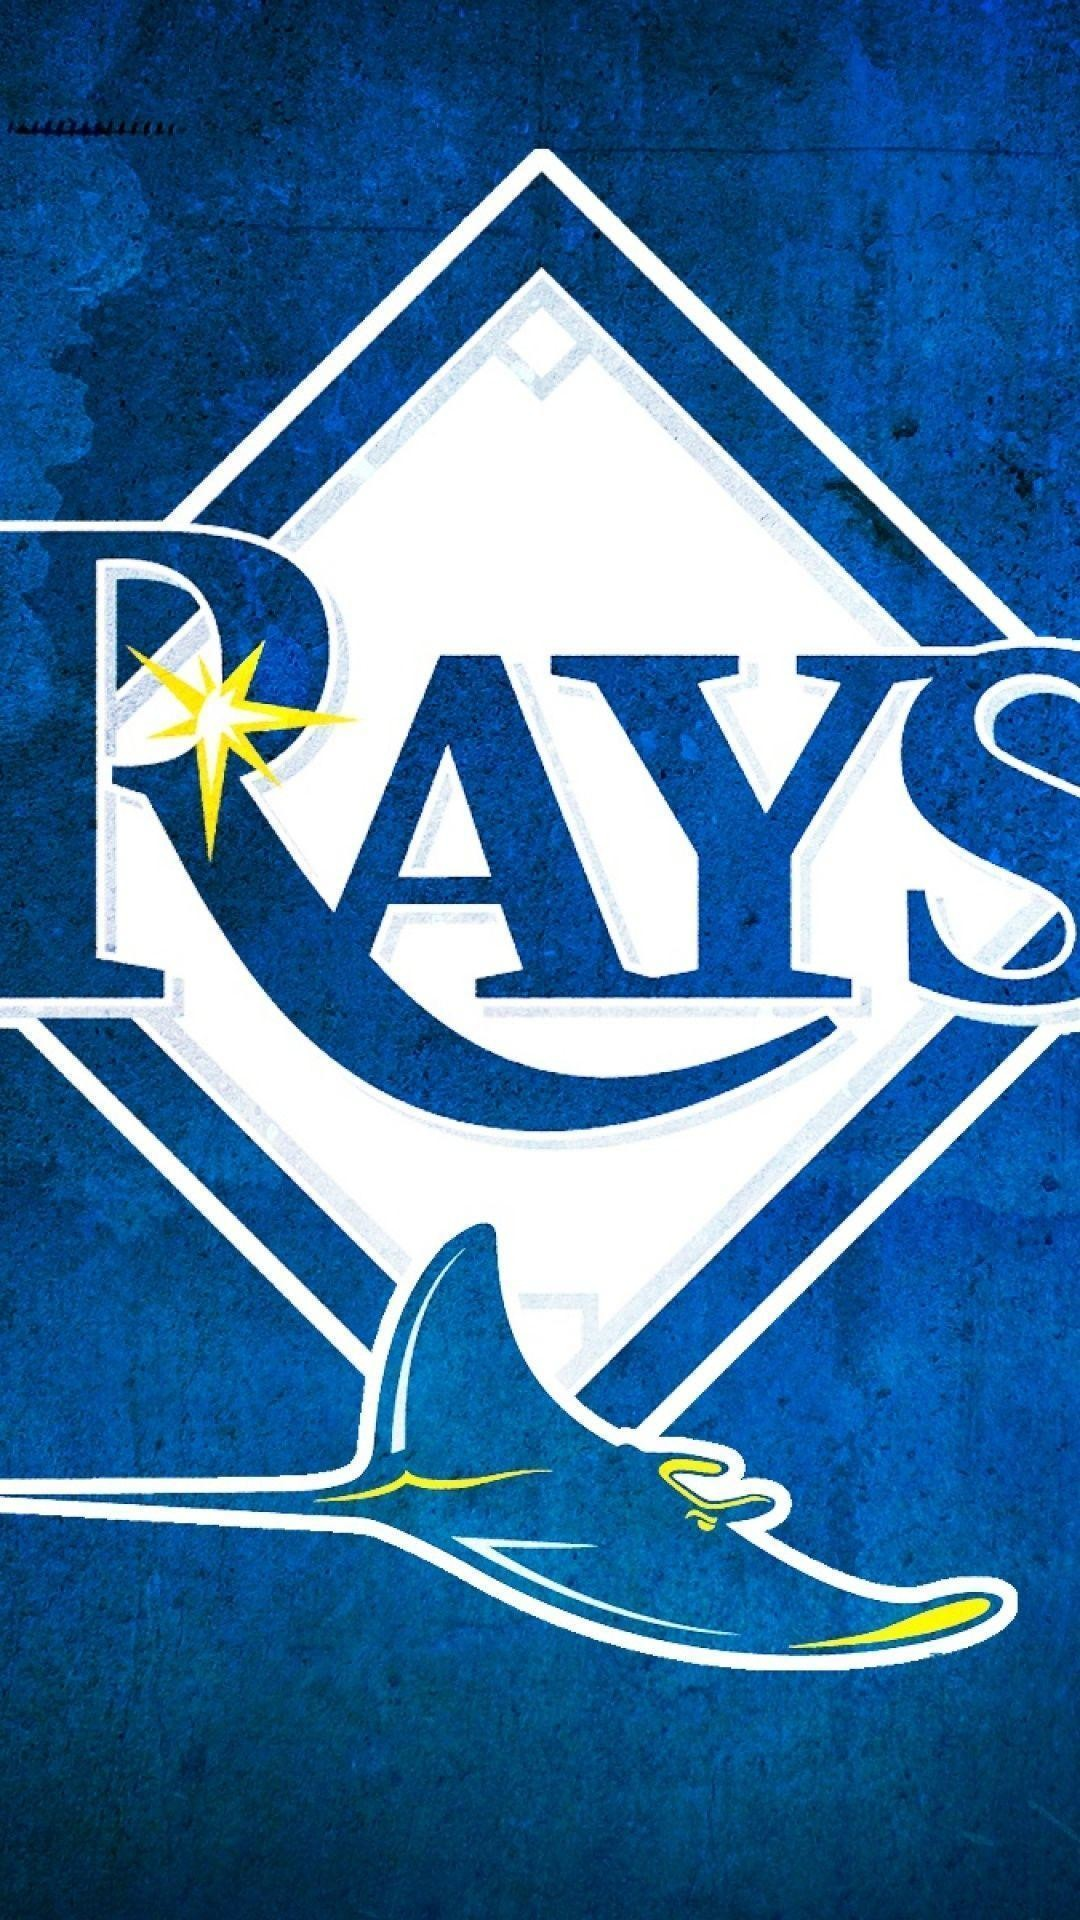 1080x1920 Tampa Bay Rays iPhone 5 Wallpaper | ID: 25527